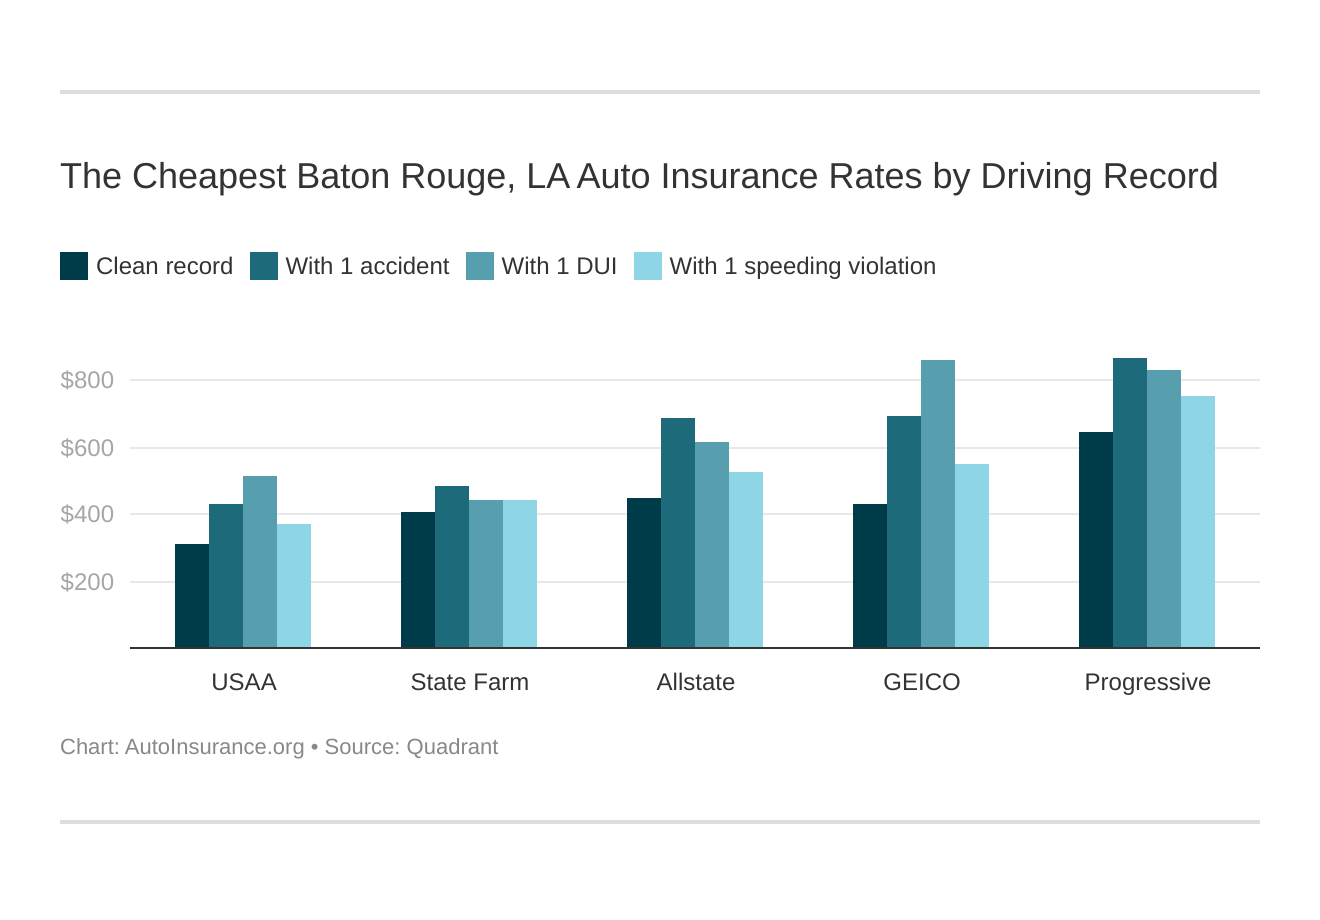 The Cheapest Baton Rouge, LA Auto Insurance Rates by Driving Record